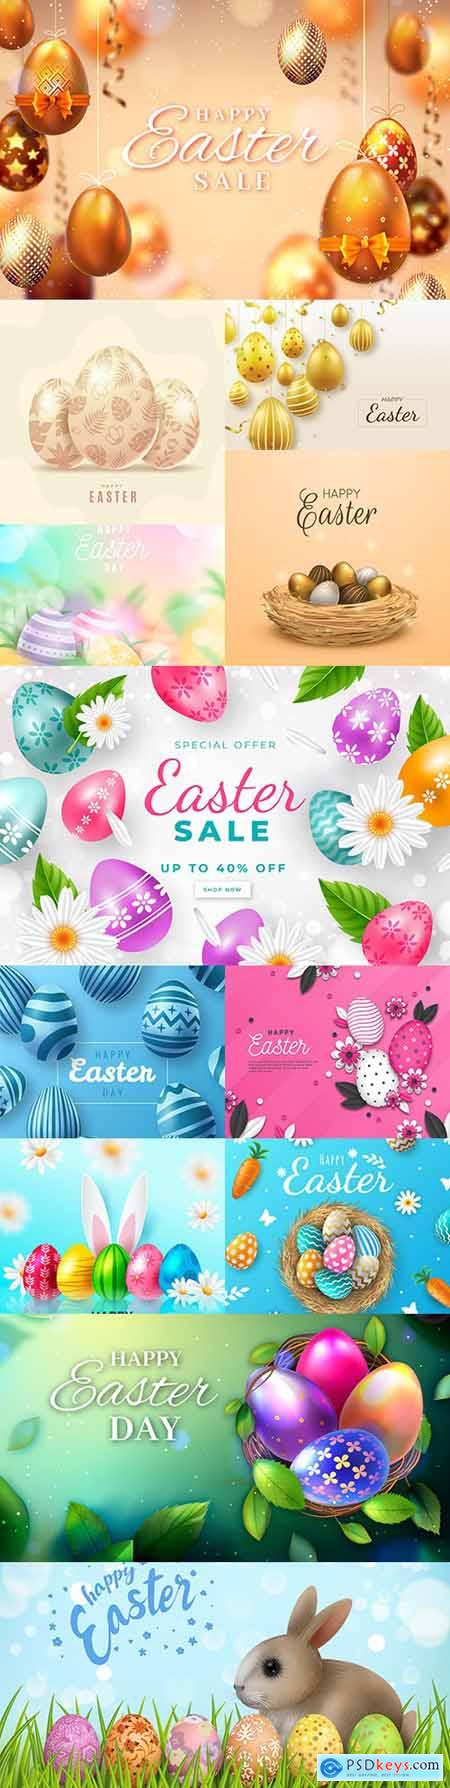 Happy Easter collection of realistic illustrations with eggs 2